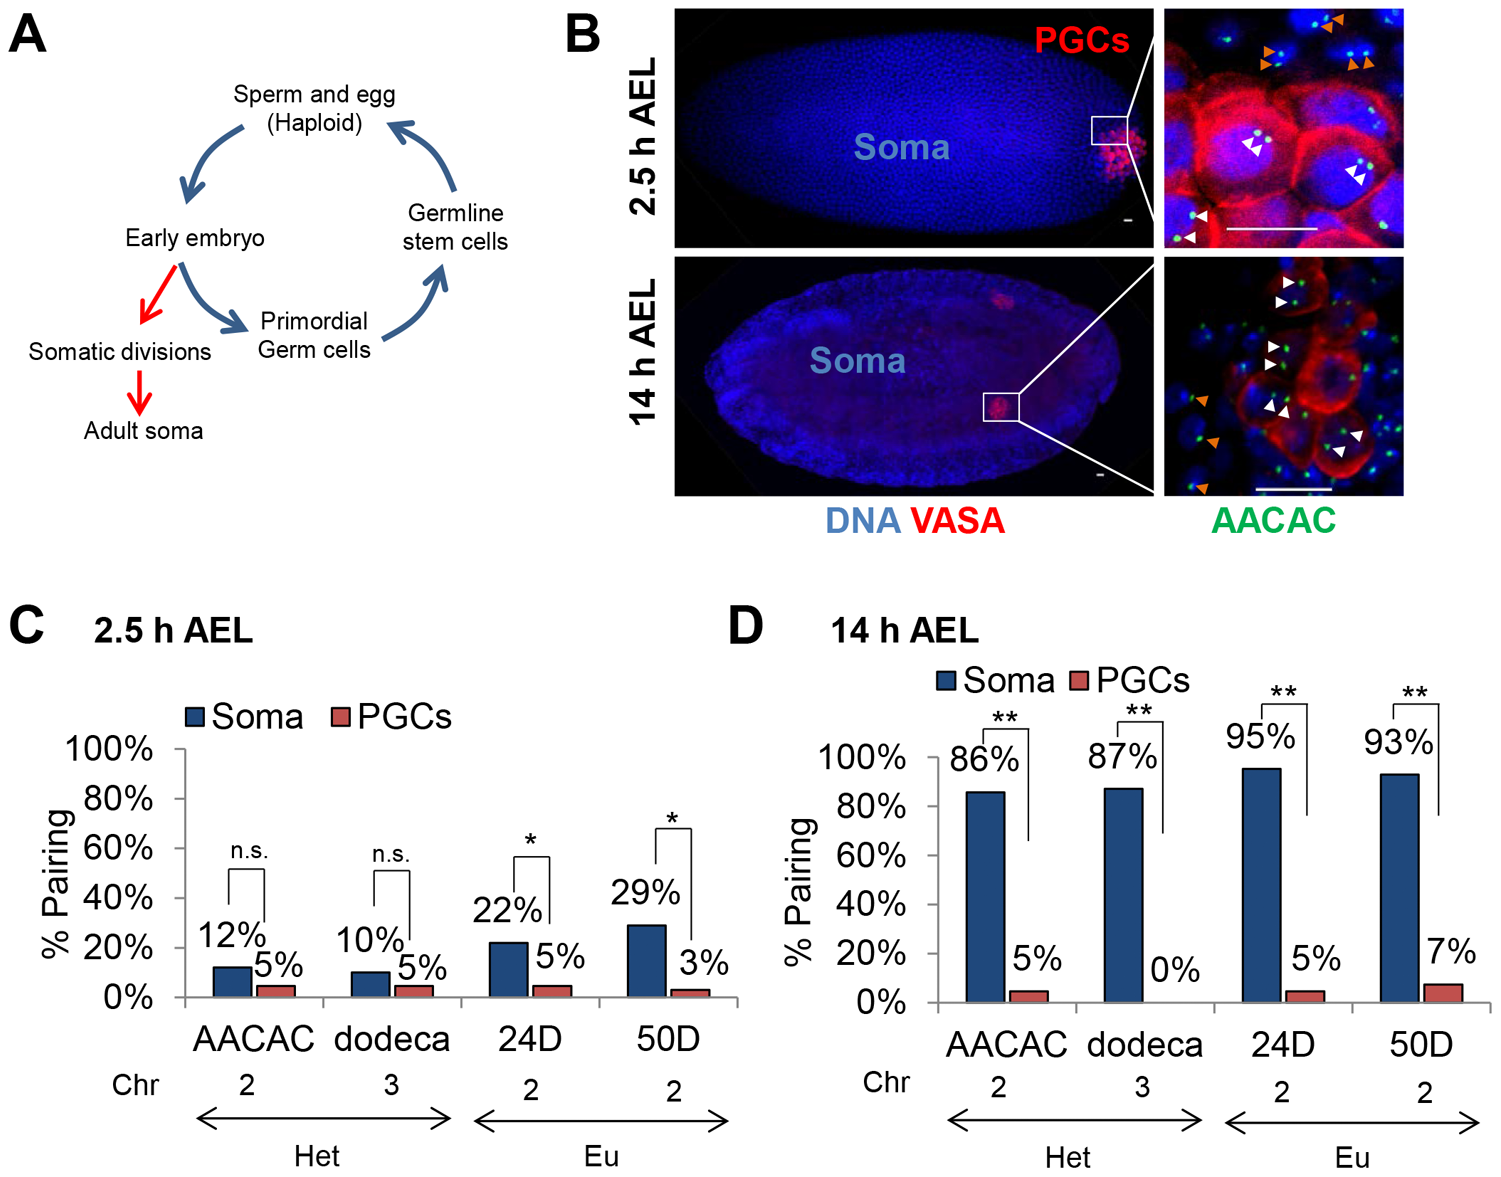 Homolog separation is maintained in primordial germ cells throughout embryogenesis.